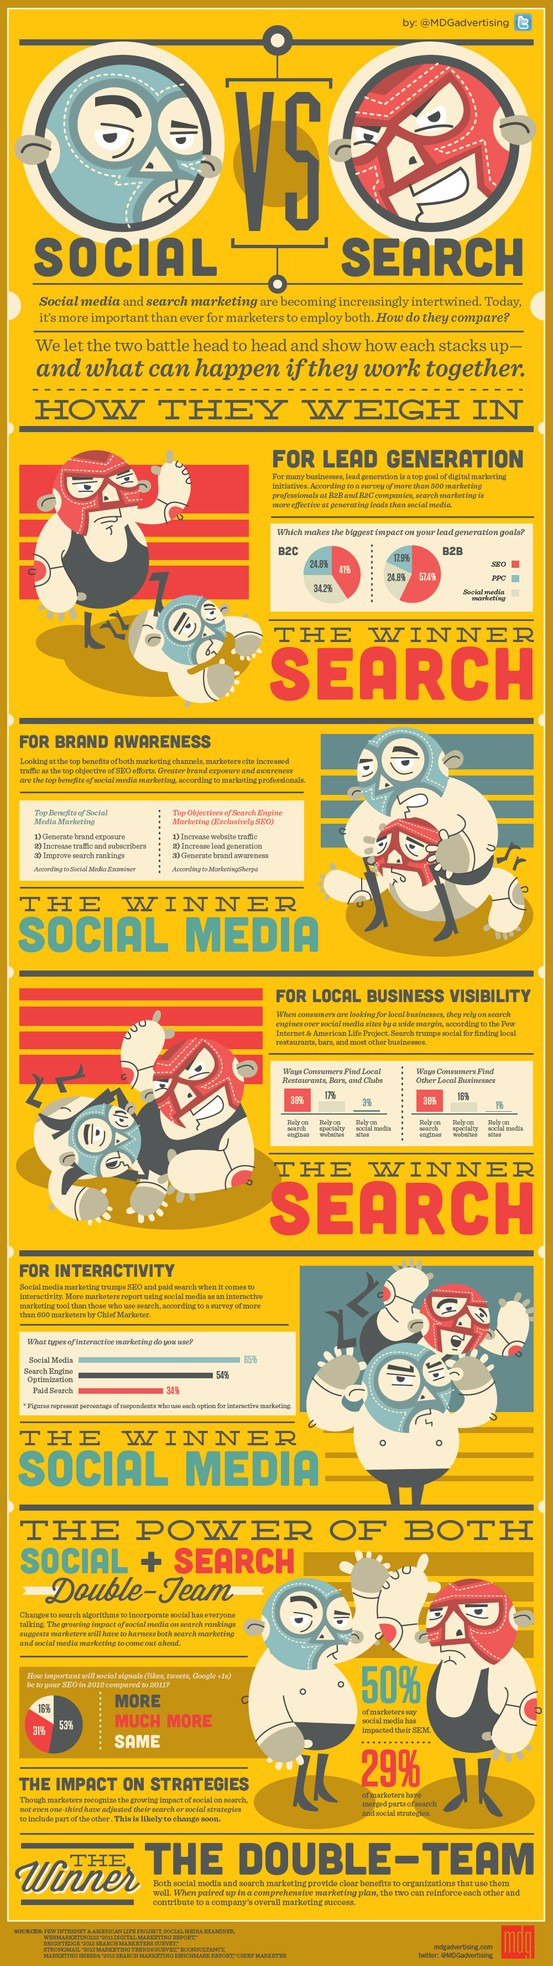 social-media-search-marketing